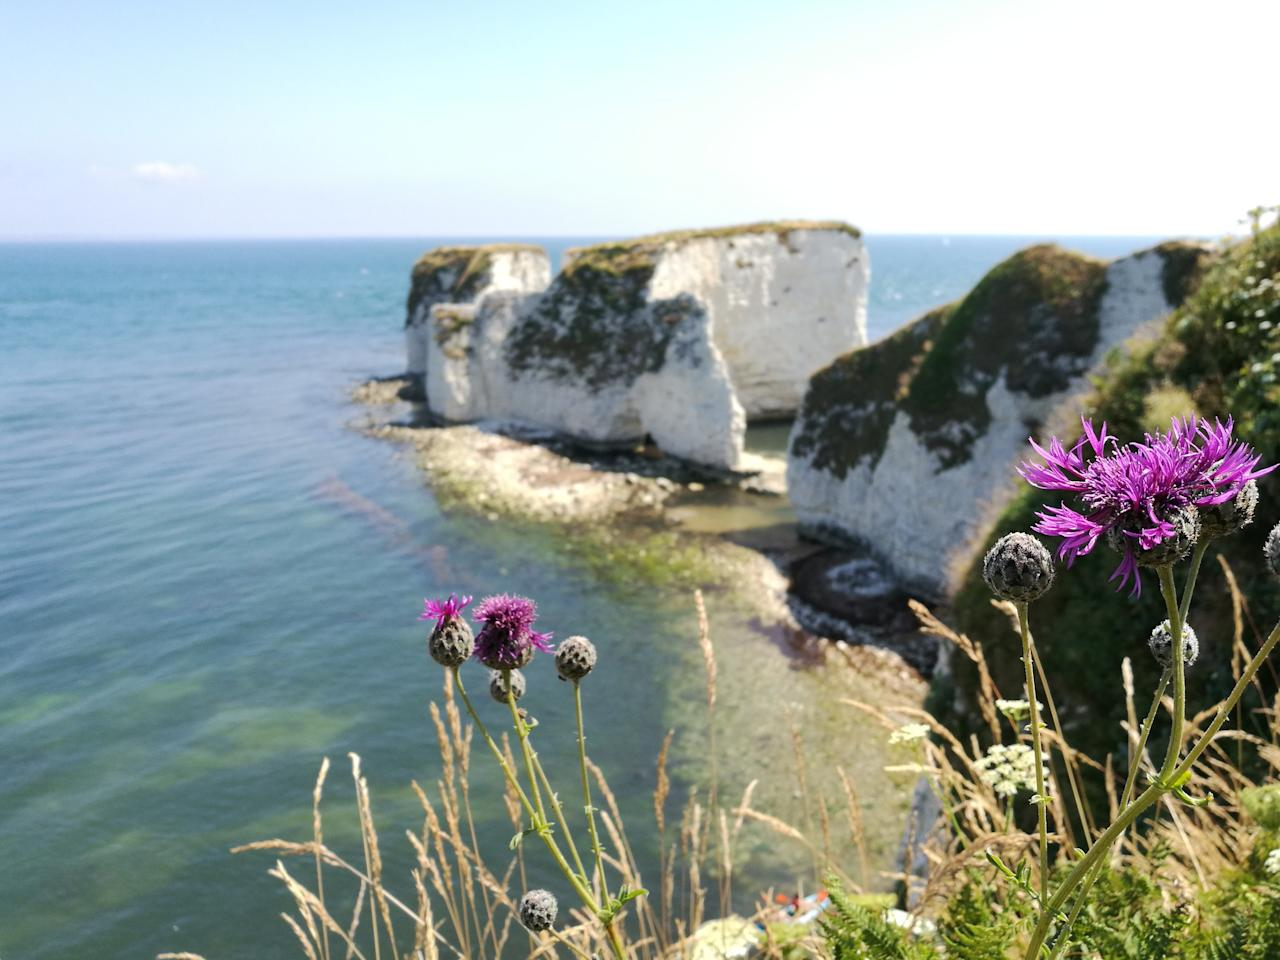 <p></p><p>For a quick pampering fix, head to Studland on the Isle of Purbeck. Feel yourself unwind as soon as you arrive at the quaint village, famous for its beaches and nature reserve. A ten-minute stoll from the beach, Knoll House is offering <span>pamper packages</span>, ideal for everything from a romantic spa getaway to a relaxing hen-do party. The price, from £169pp, includes one night's B&B, lunch, dinner and a 45-minute treatment. <em>[Photo: Getty]</em> </p><p></p>